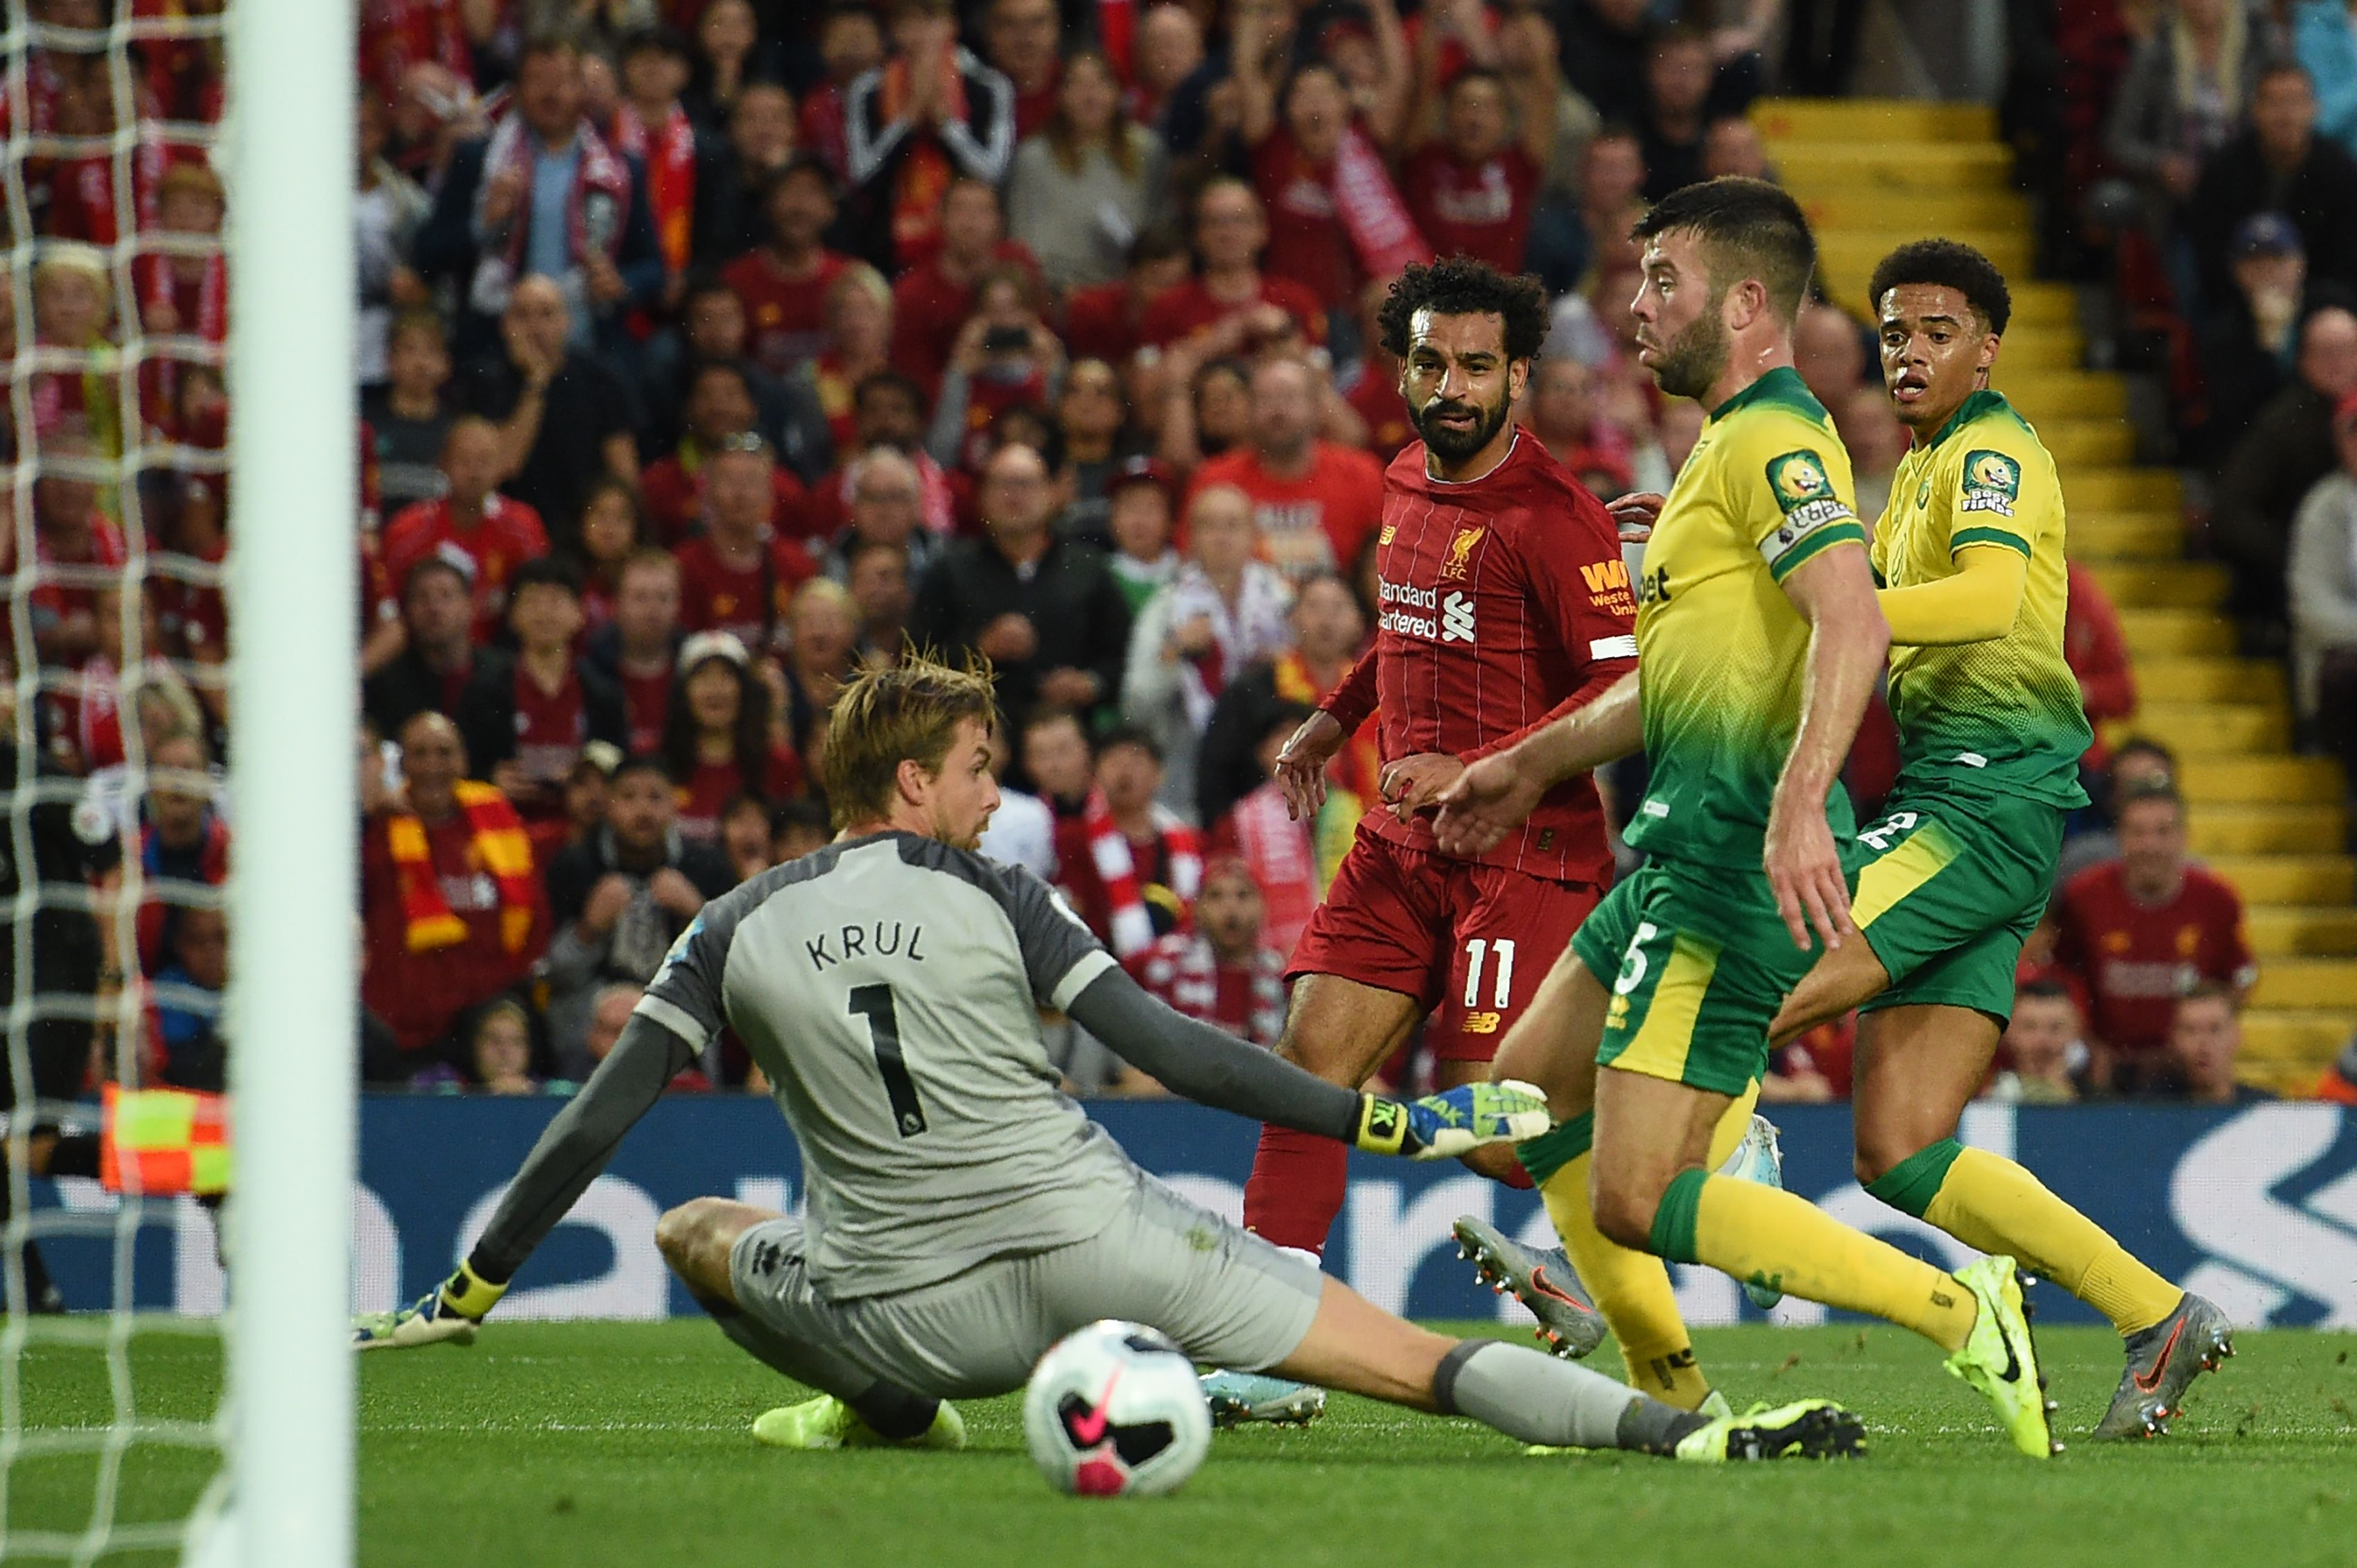 Liverpool opens new English Premier League season with rout - The